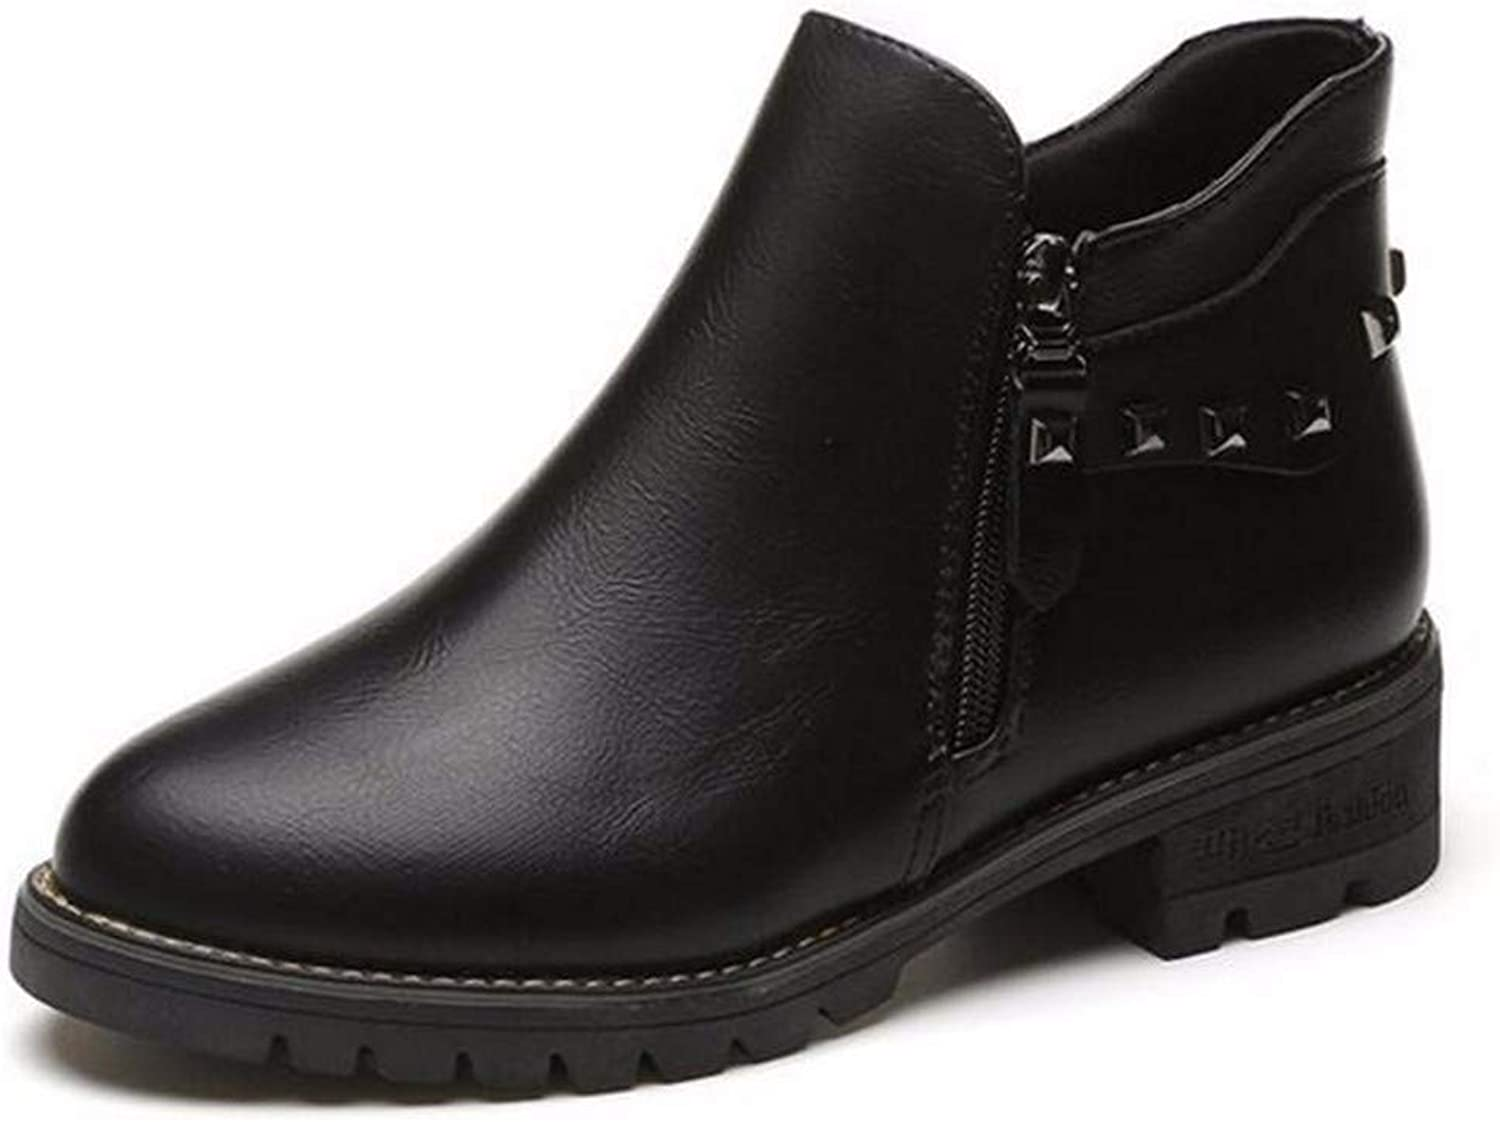 Women's Boots with Martin Boots and Women's Boots